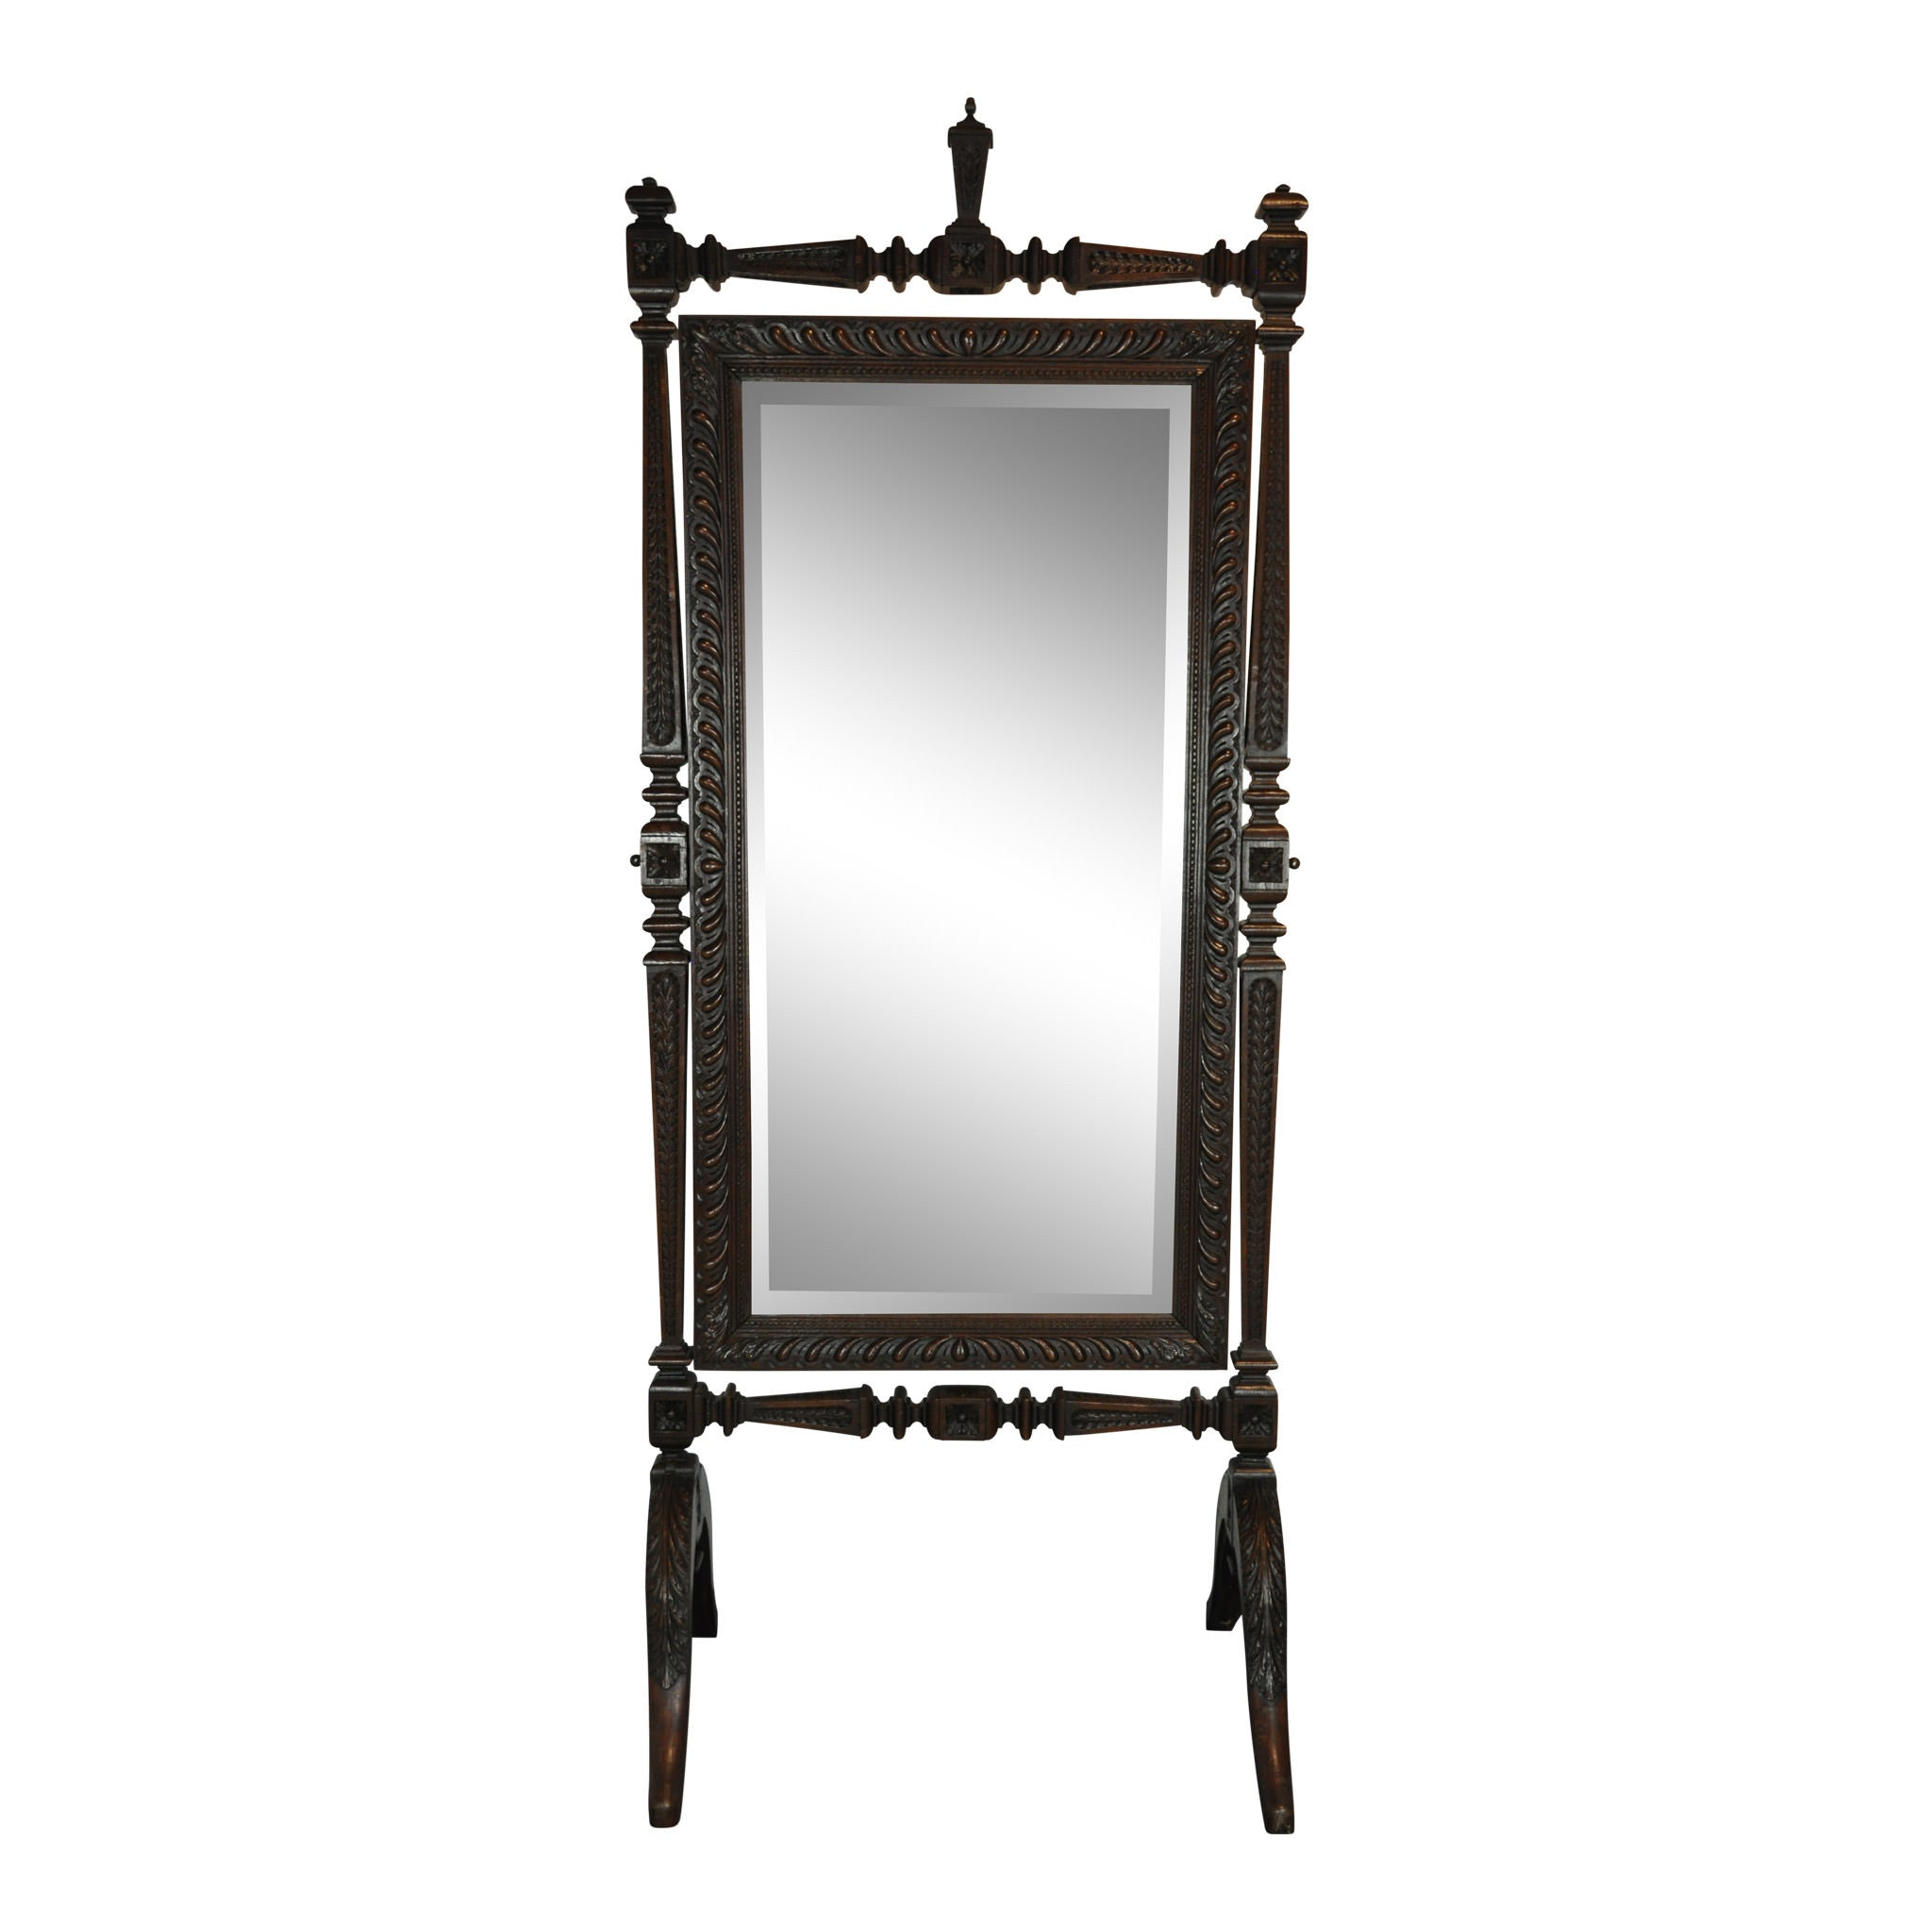 Carved Cheval Mirror (1stdibs)